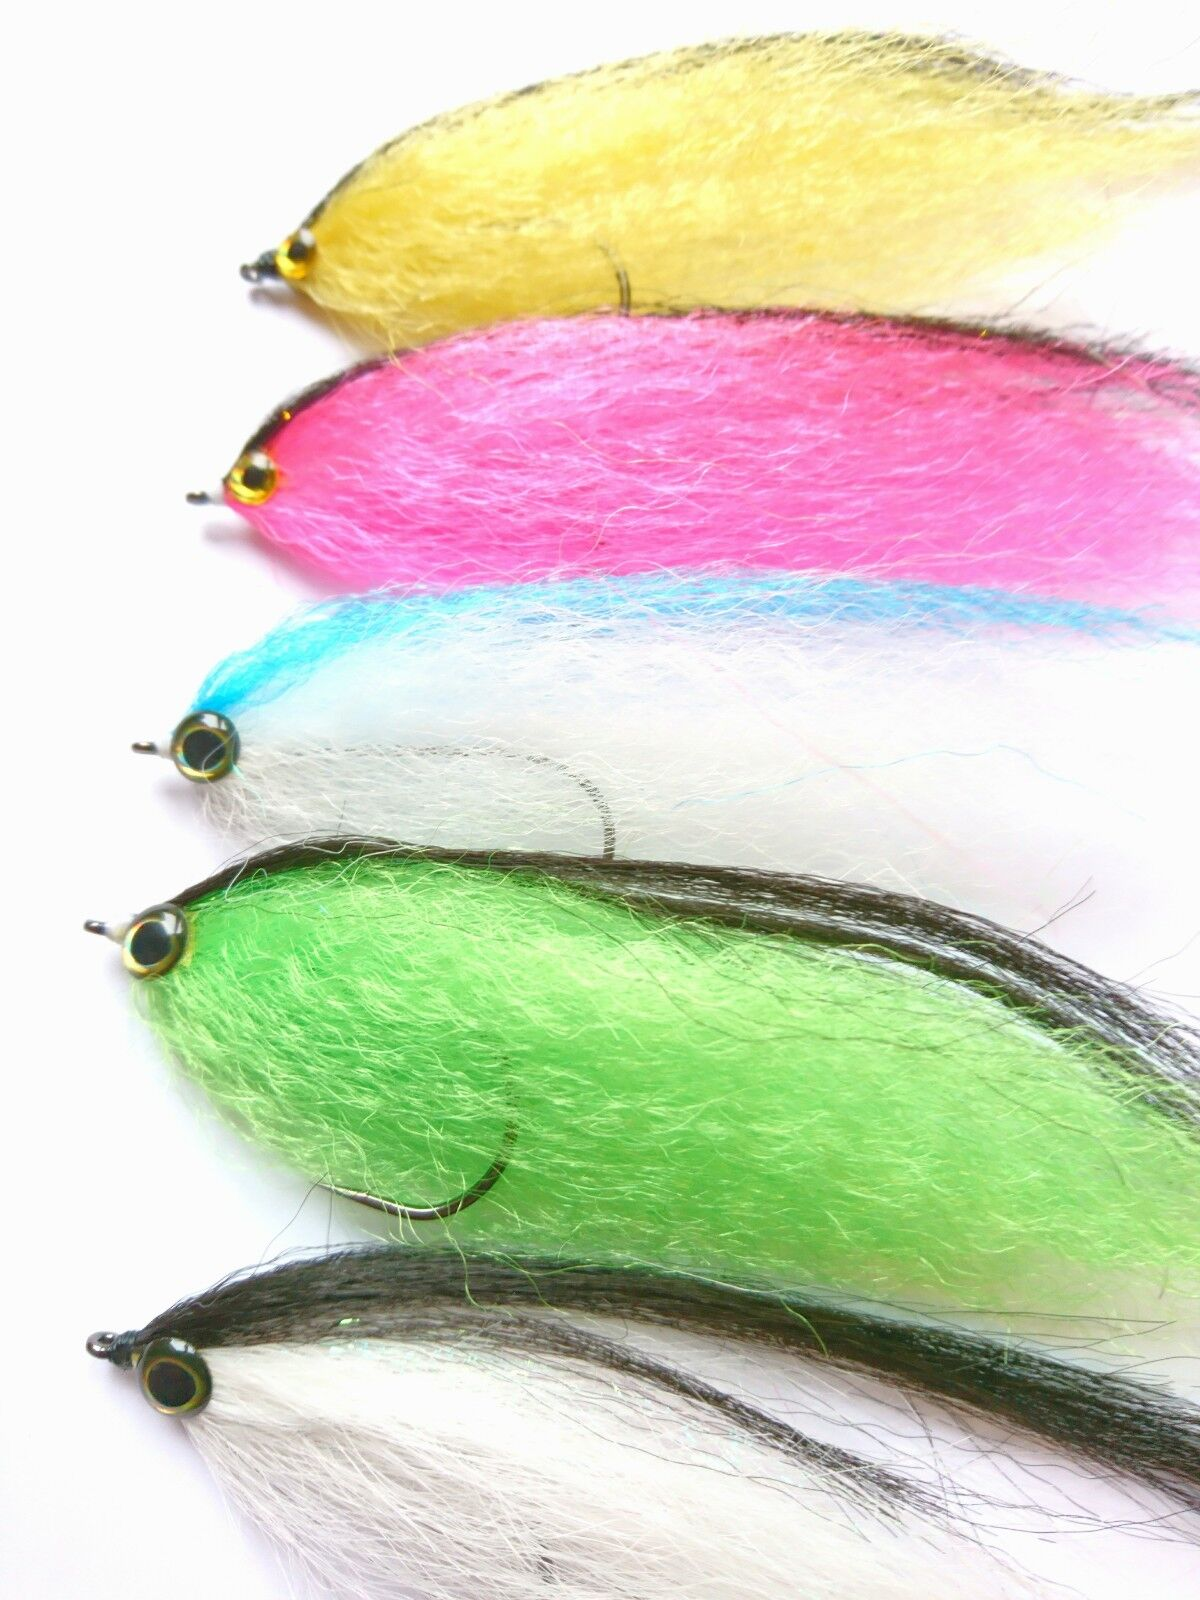 10 Large Pike   Zander predatory Fly Lures - Flies by Iain Barr Fly Fishing